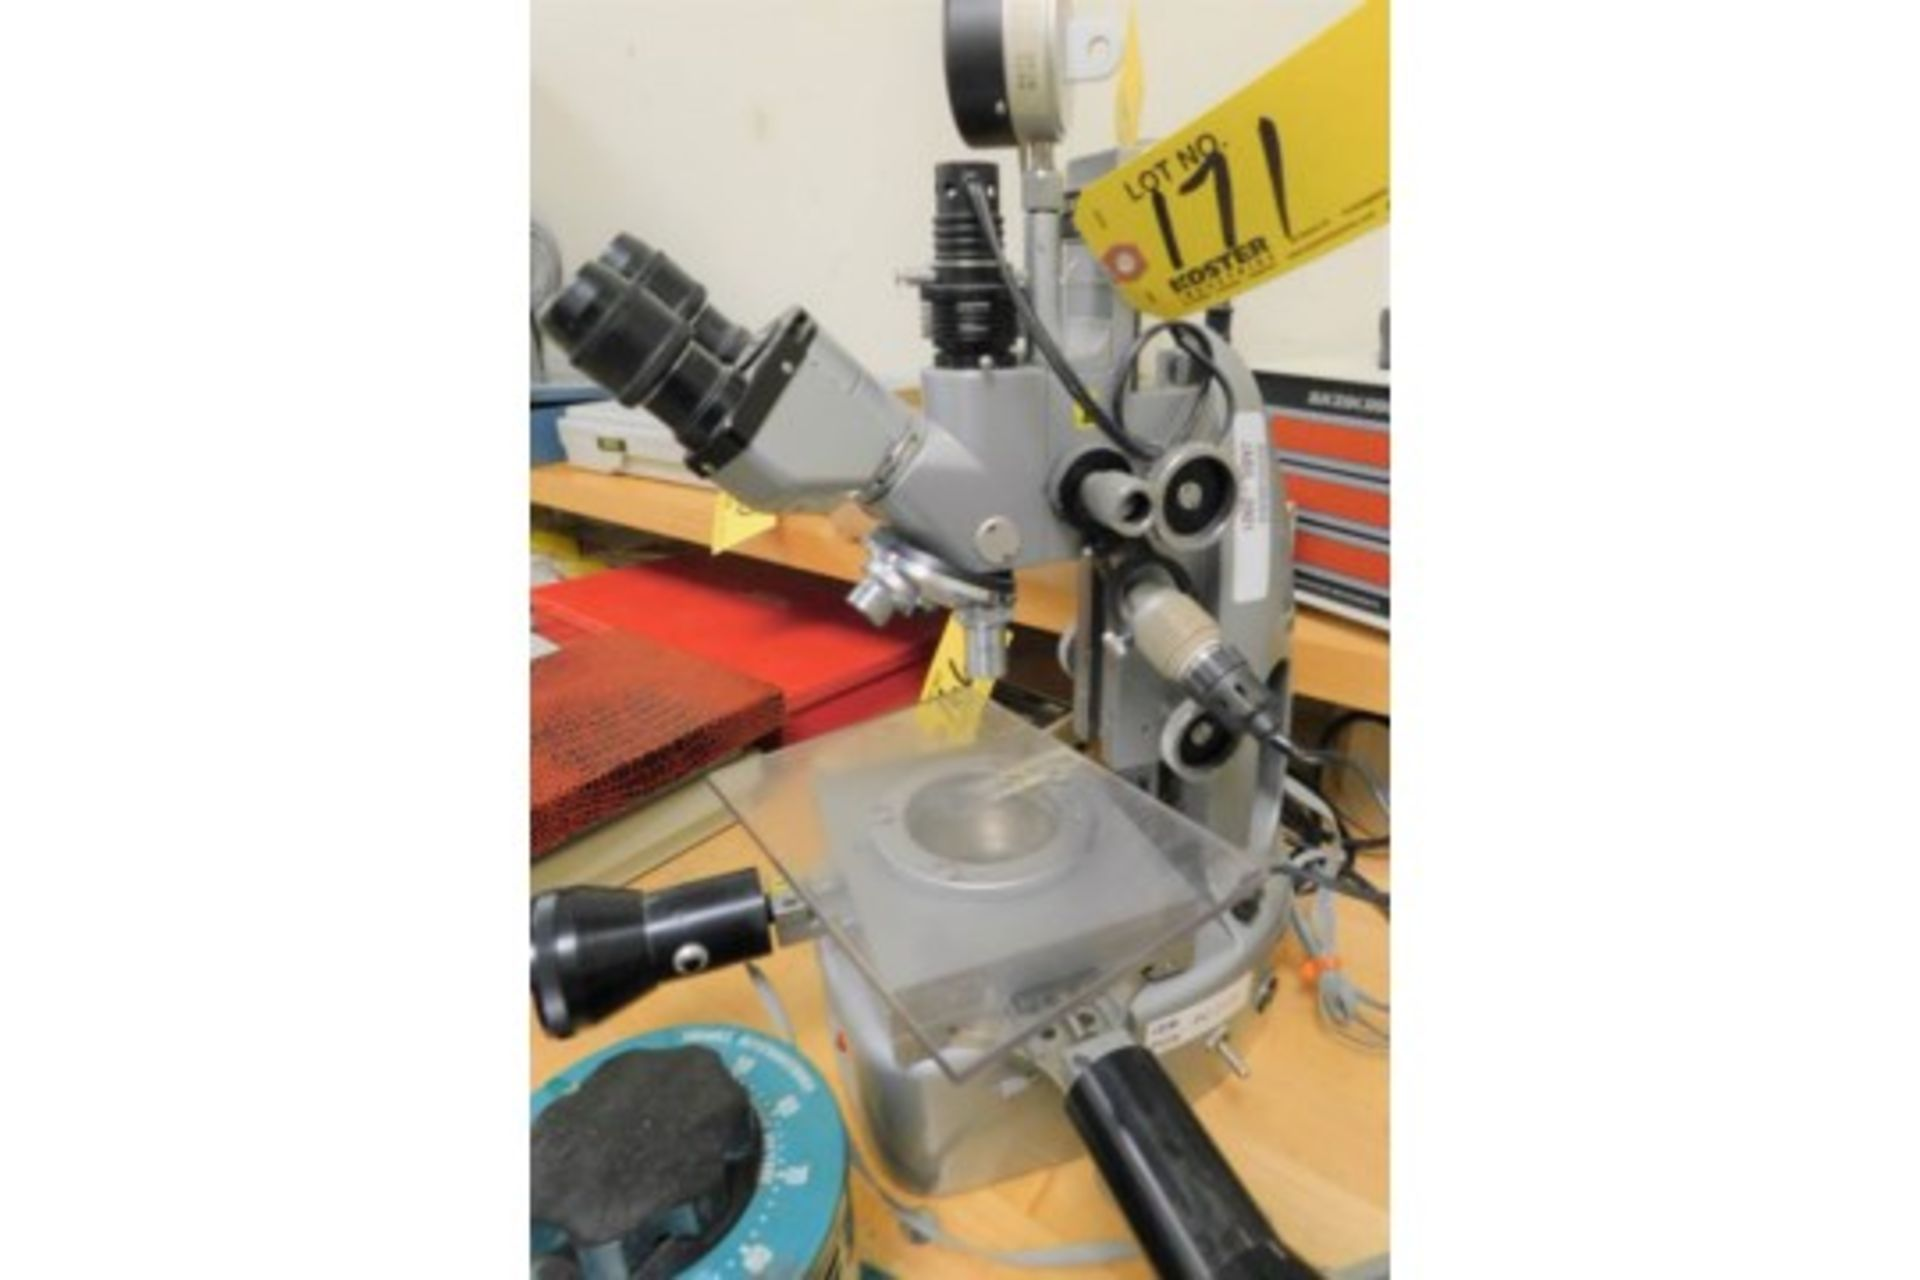 Lot 52 - UNITRON MDL. 7758 MICROSCOPE WITH MICROCODE DIGITAL READOUT[LOCATED AT 2455 SOUTH ROAD (ROUTE 9),